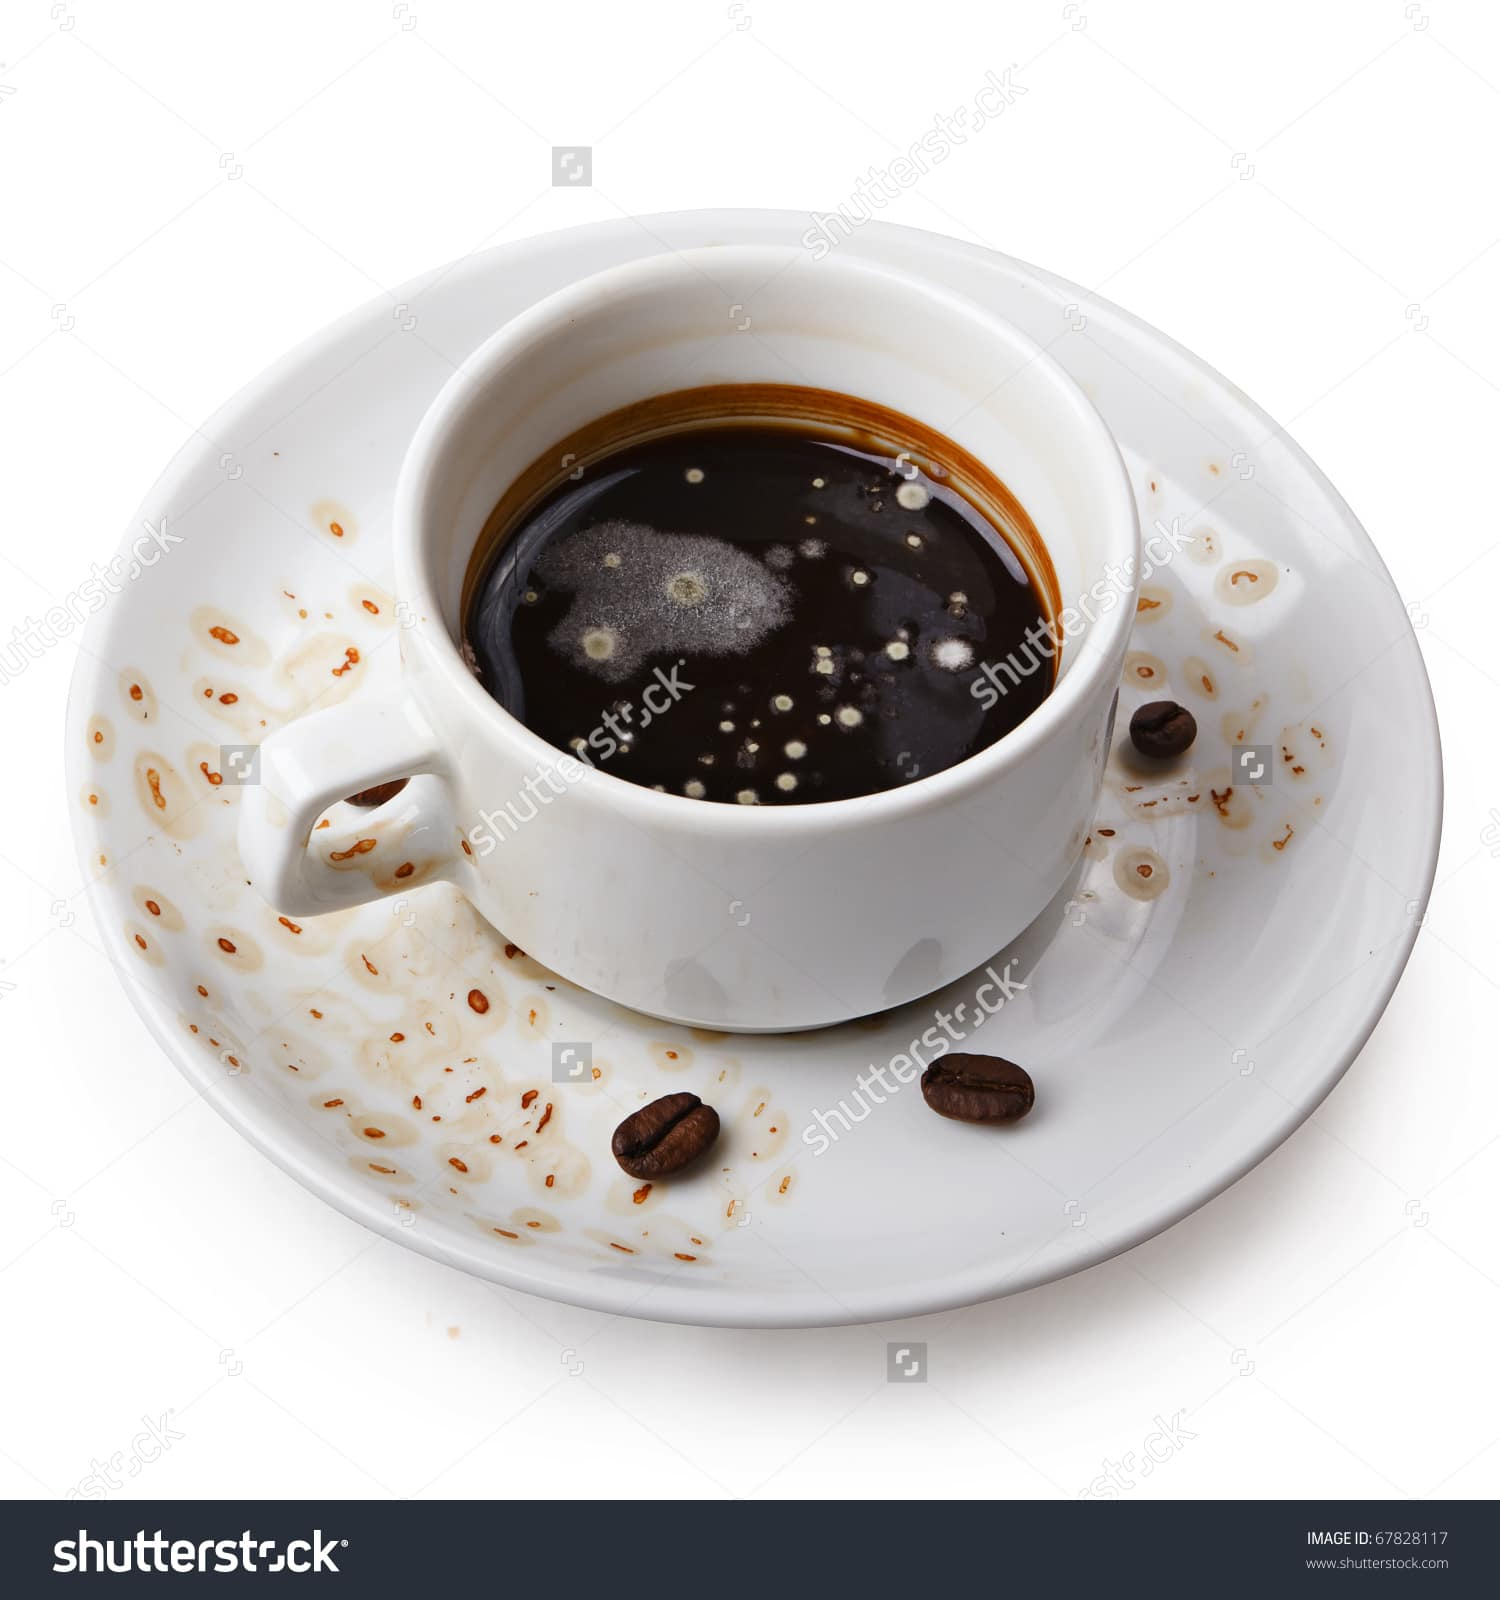 stock-photo-old-unfinished-cup-of-moldy-coffee-with-soft-shadow-on-over-white-clipping-path-without-shadow-67828117